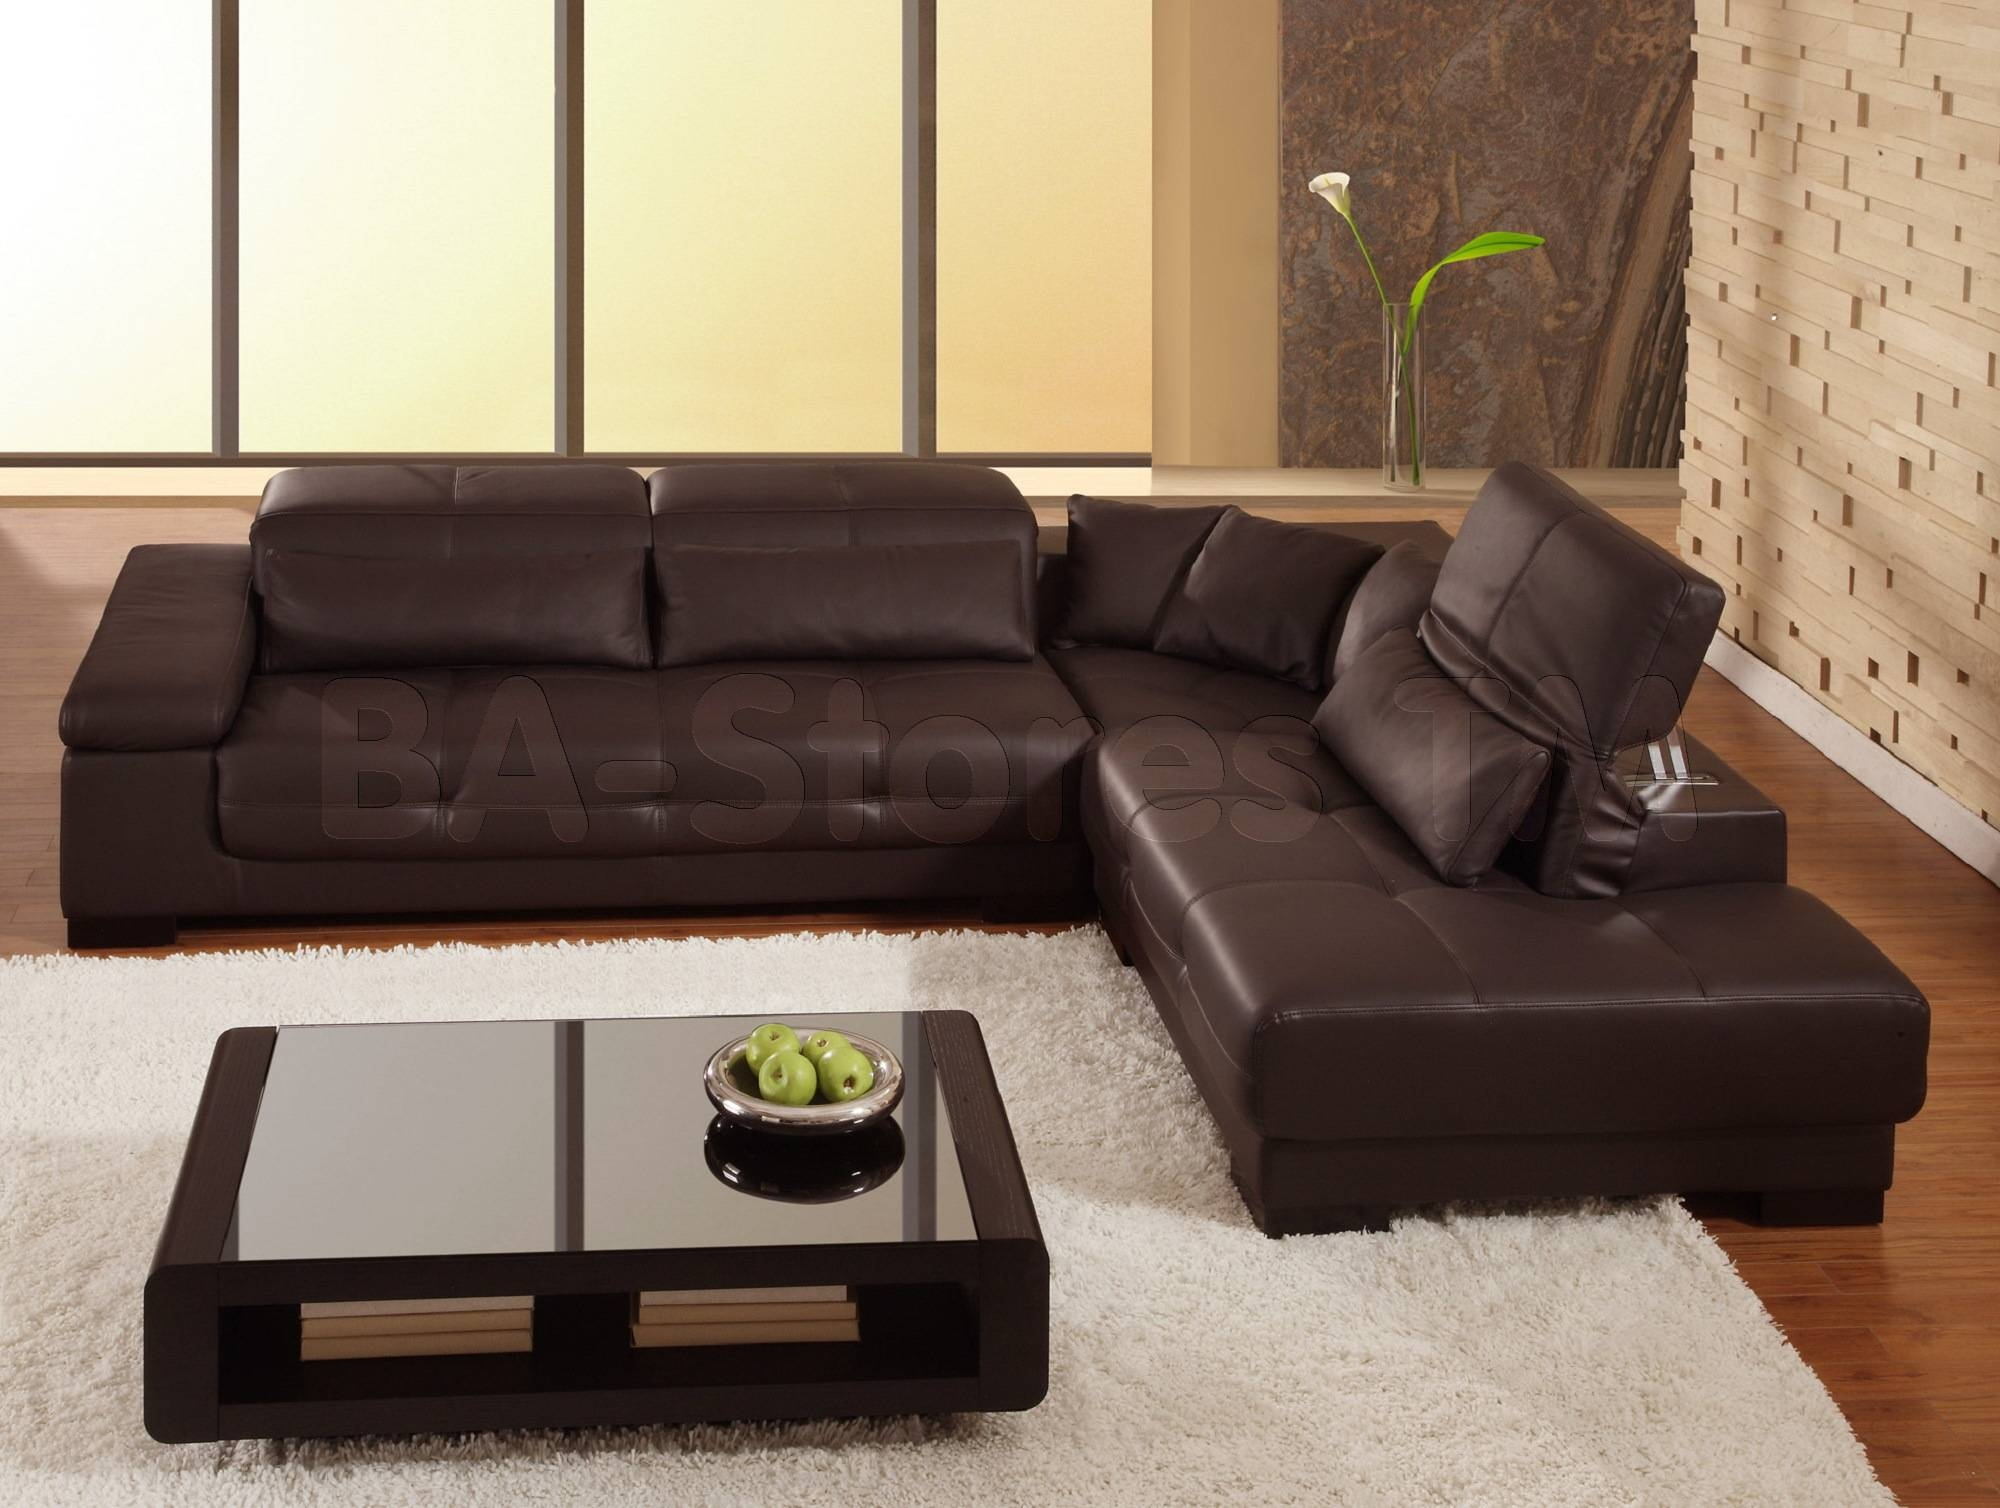 Velvet Sofas Sectionals - Leather Sectional Sofa throughout Velvet Sofas Sectionals (Image 25 of 25)